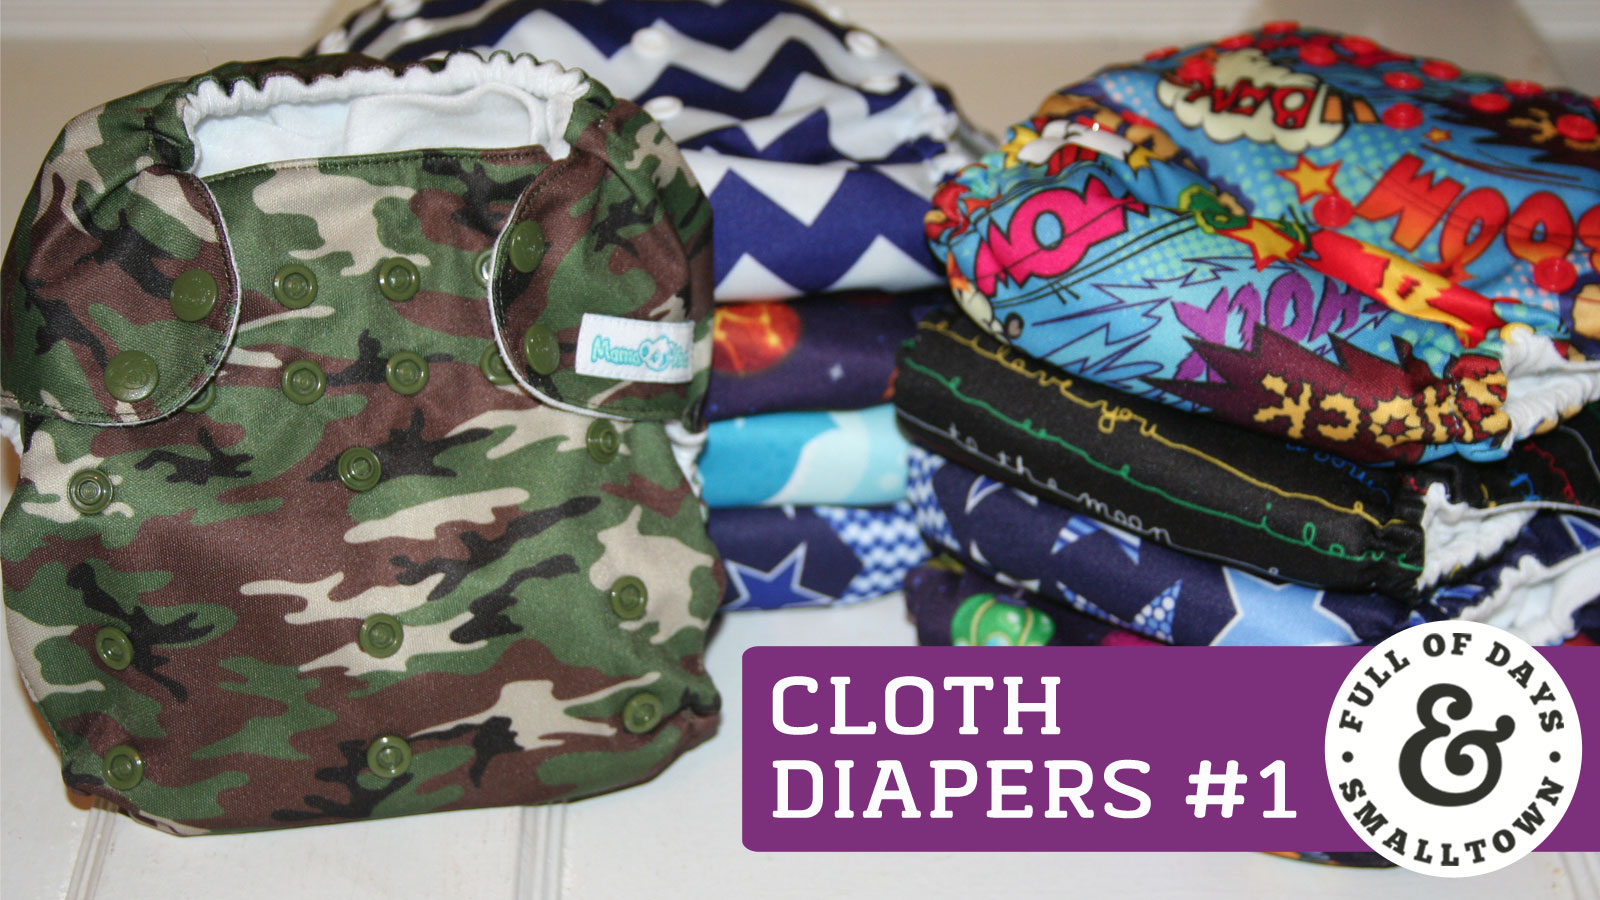 cloth-diapers_1_full-of-days_1600-x-900_v-2